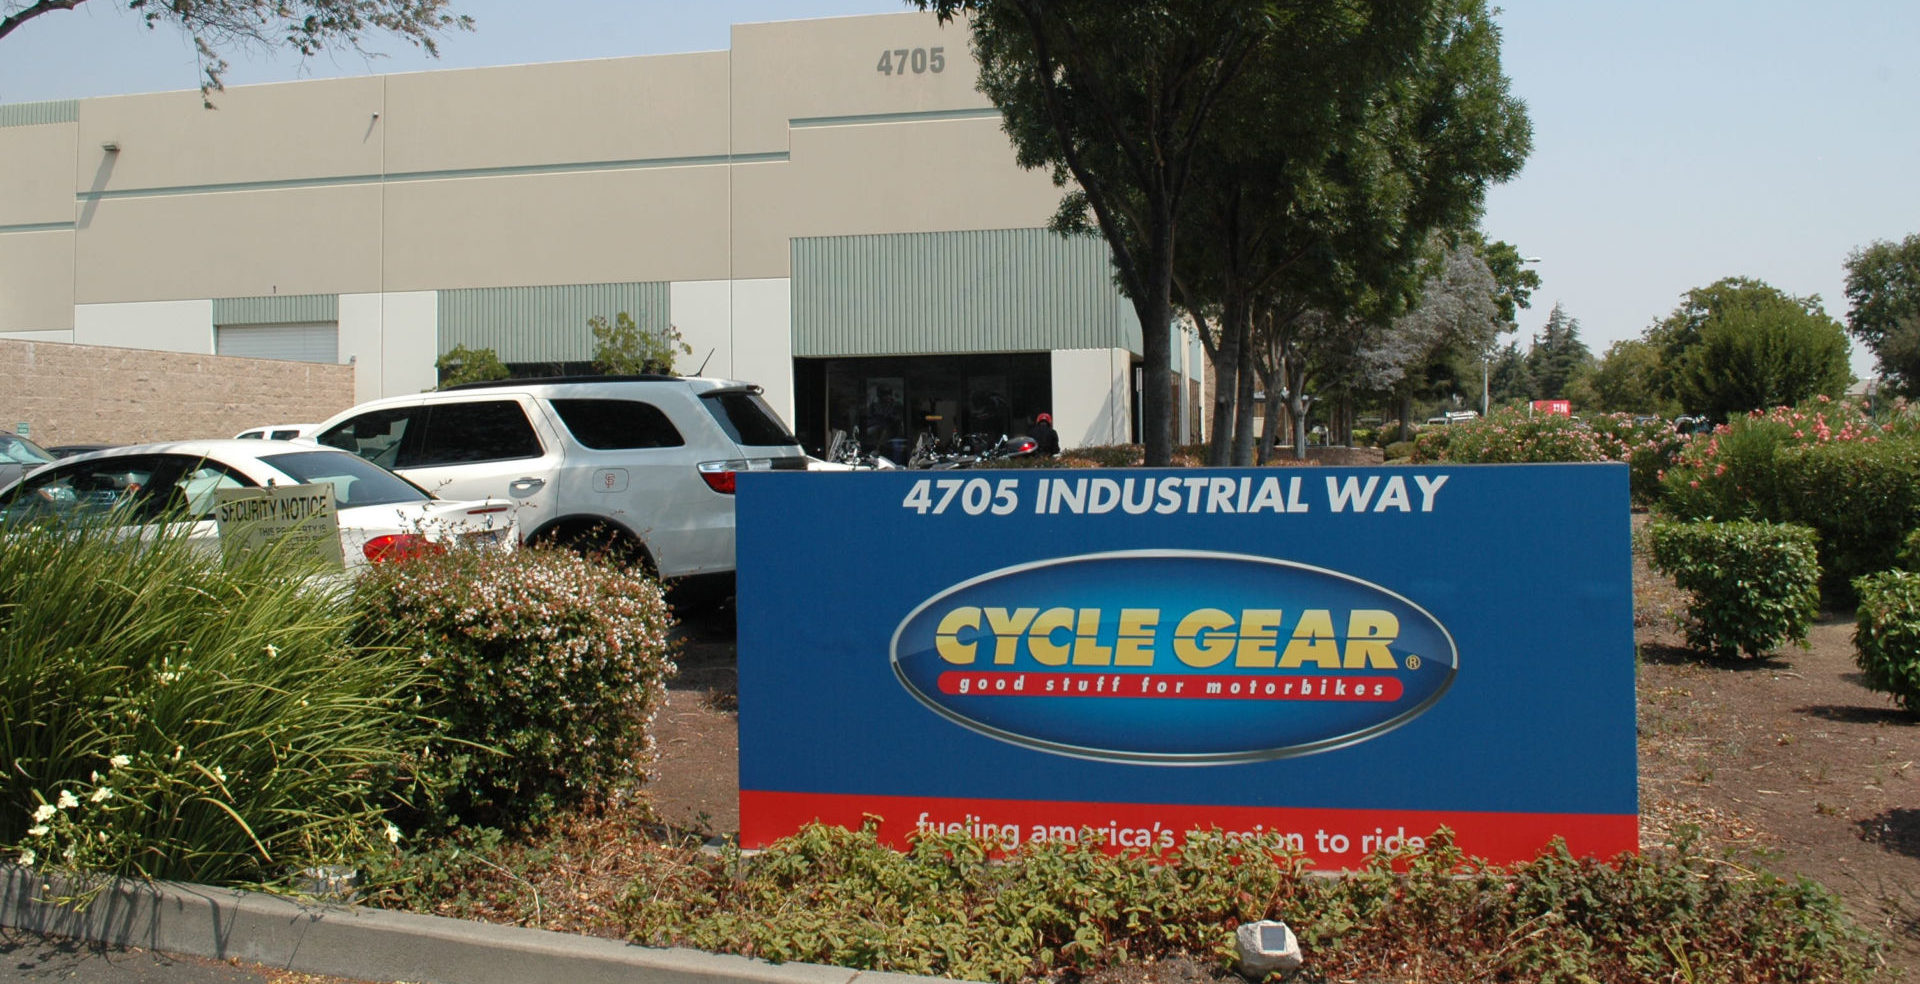 Cycle Gear headquarters in Benicia, California. Photo by David Swarts.